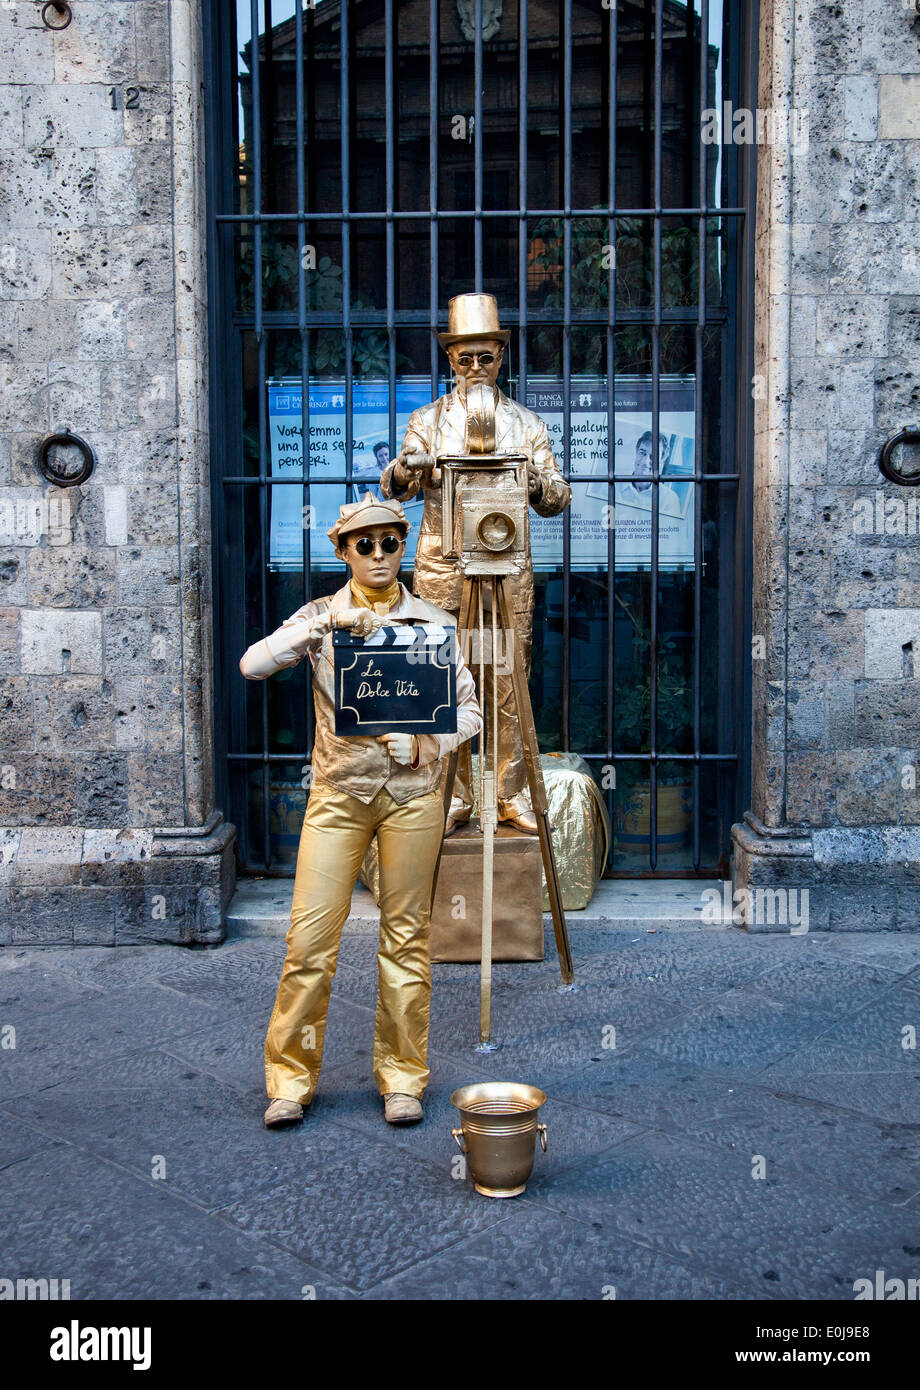 Street performers in Sienna. - Stock Image